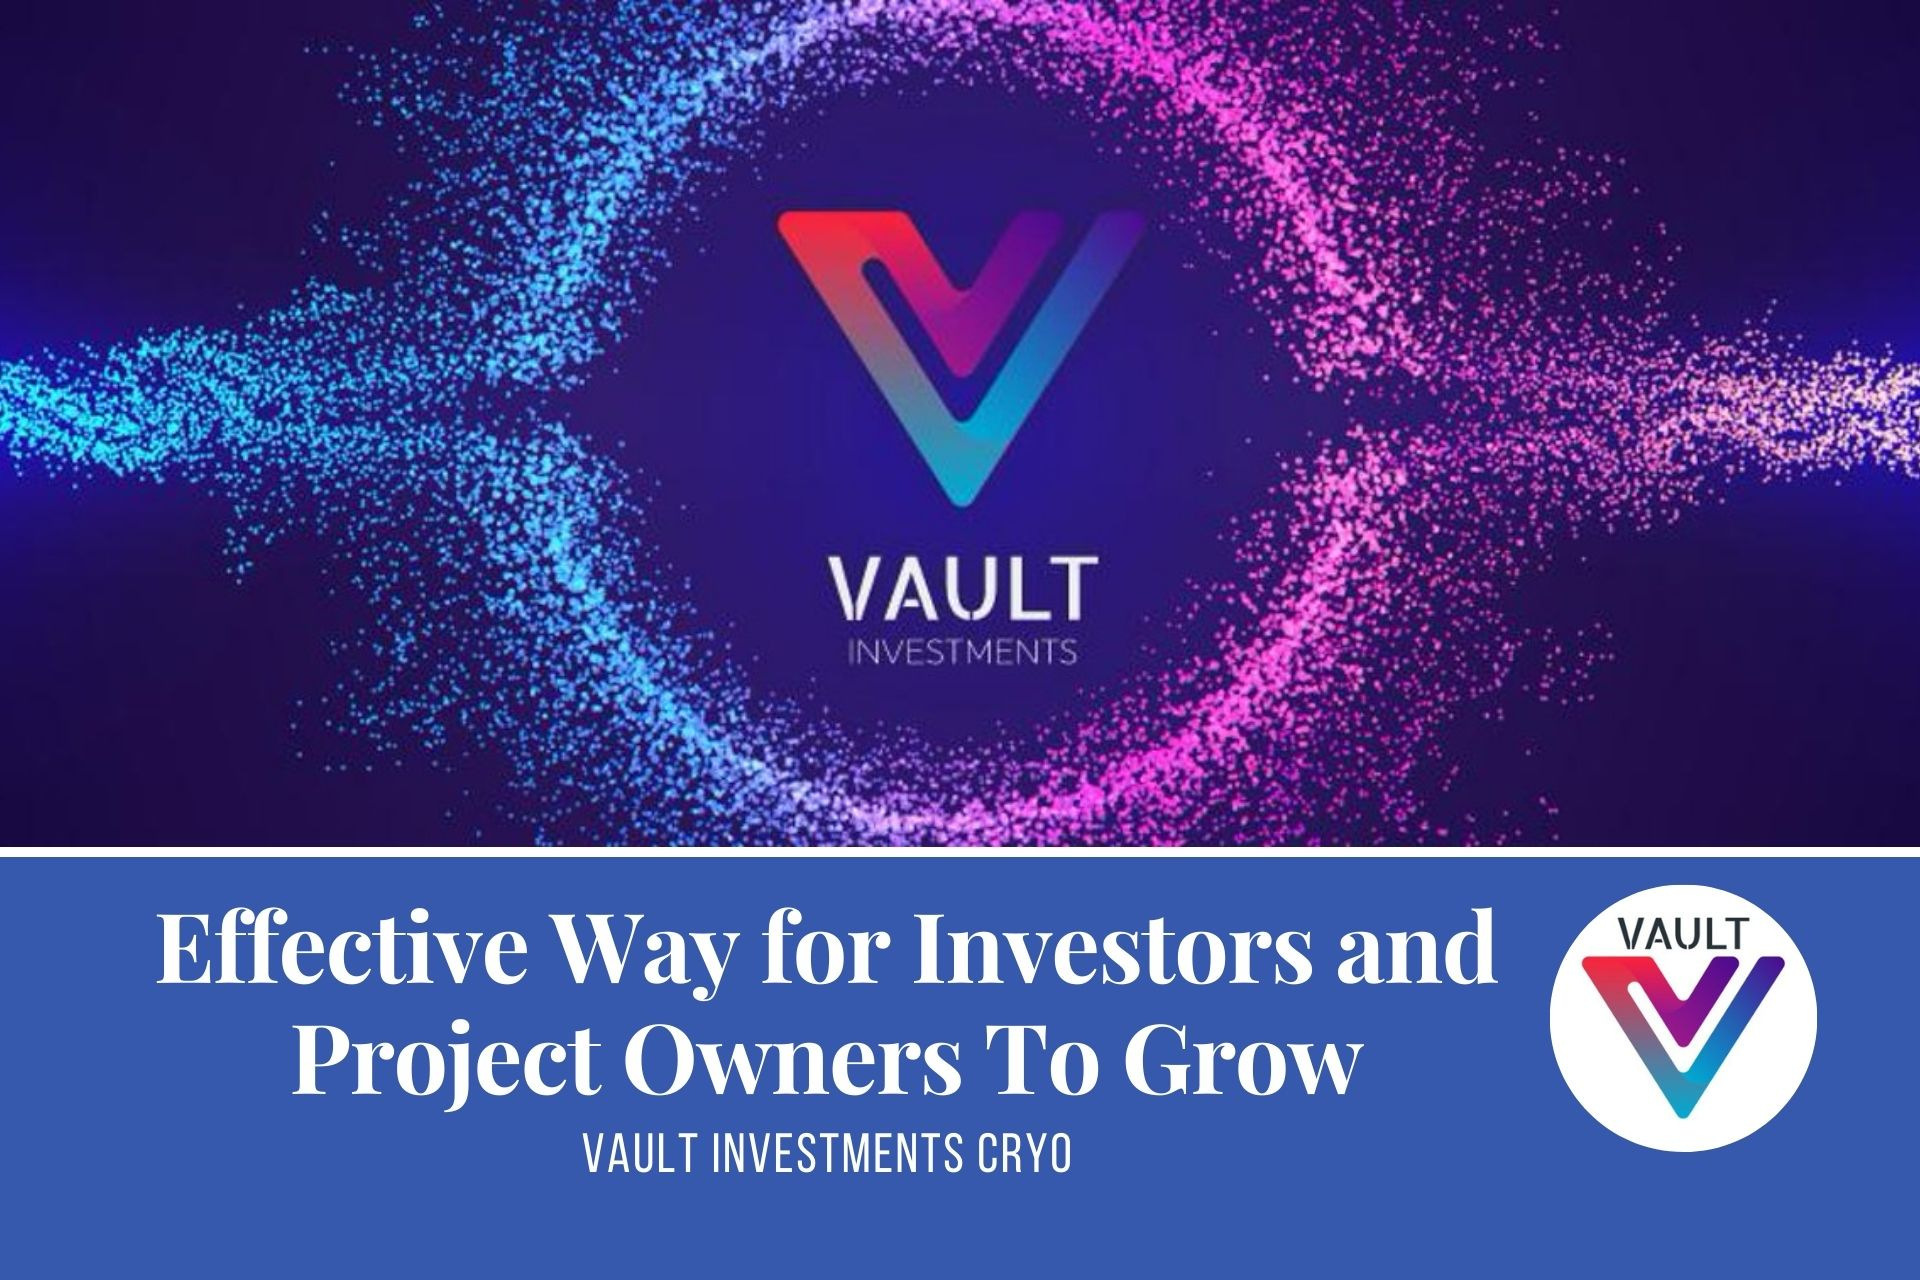 VAULT Investments | A Simple and Effective Way for Investors and Project Owners To Grow Together